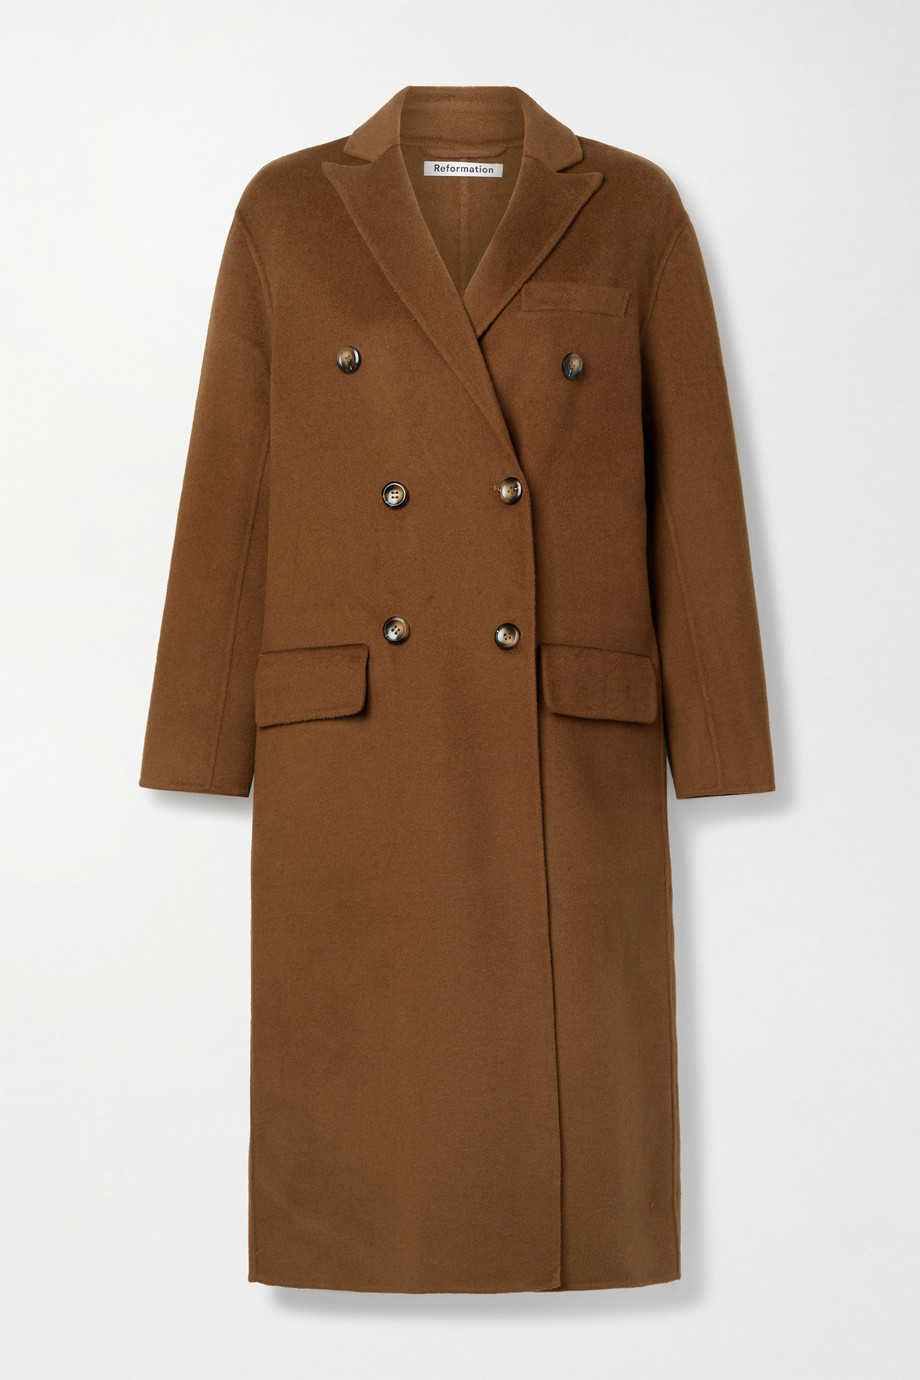 REFORMATION Hayden double-breasted felt coat